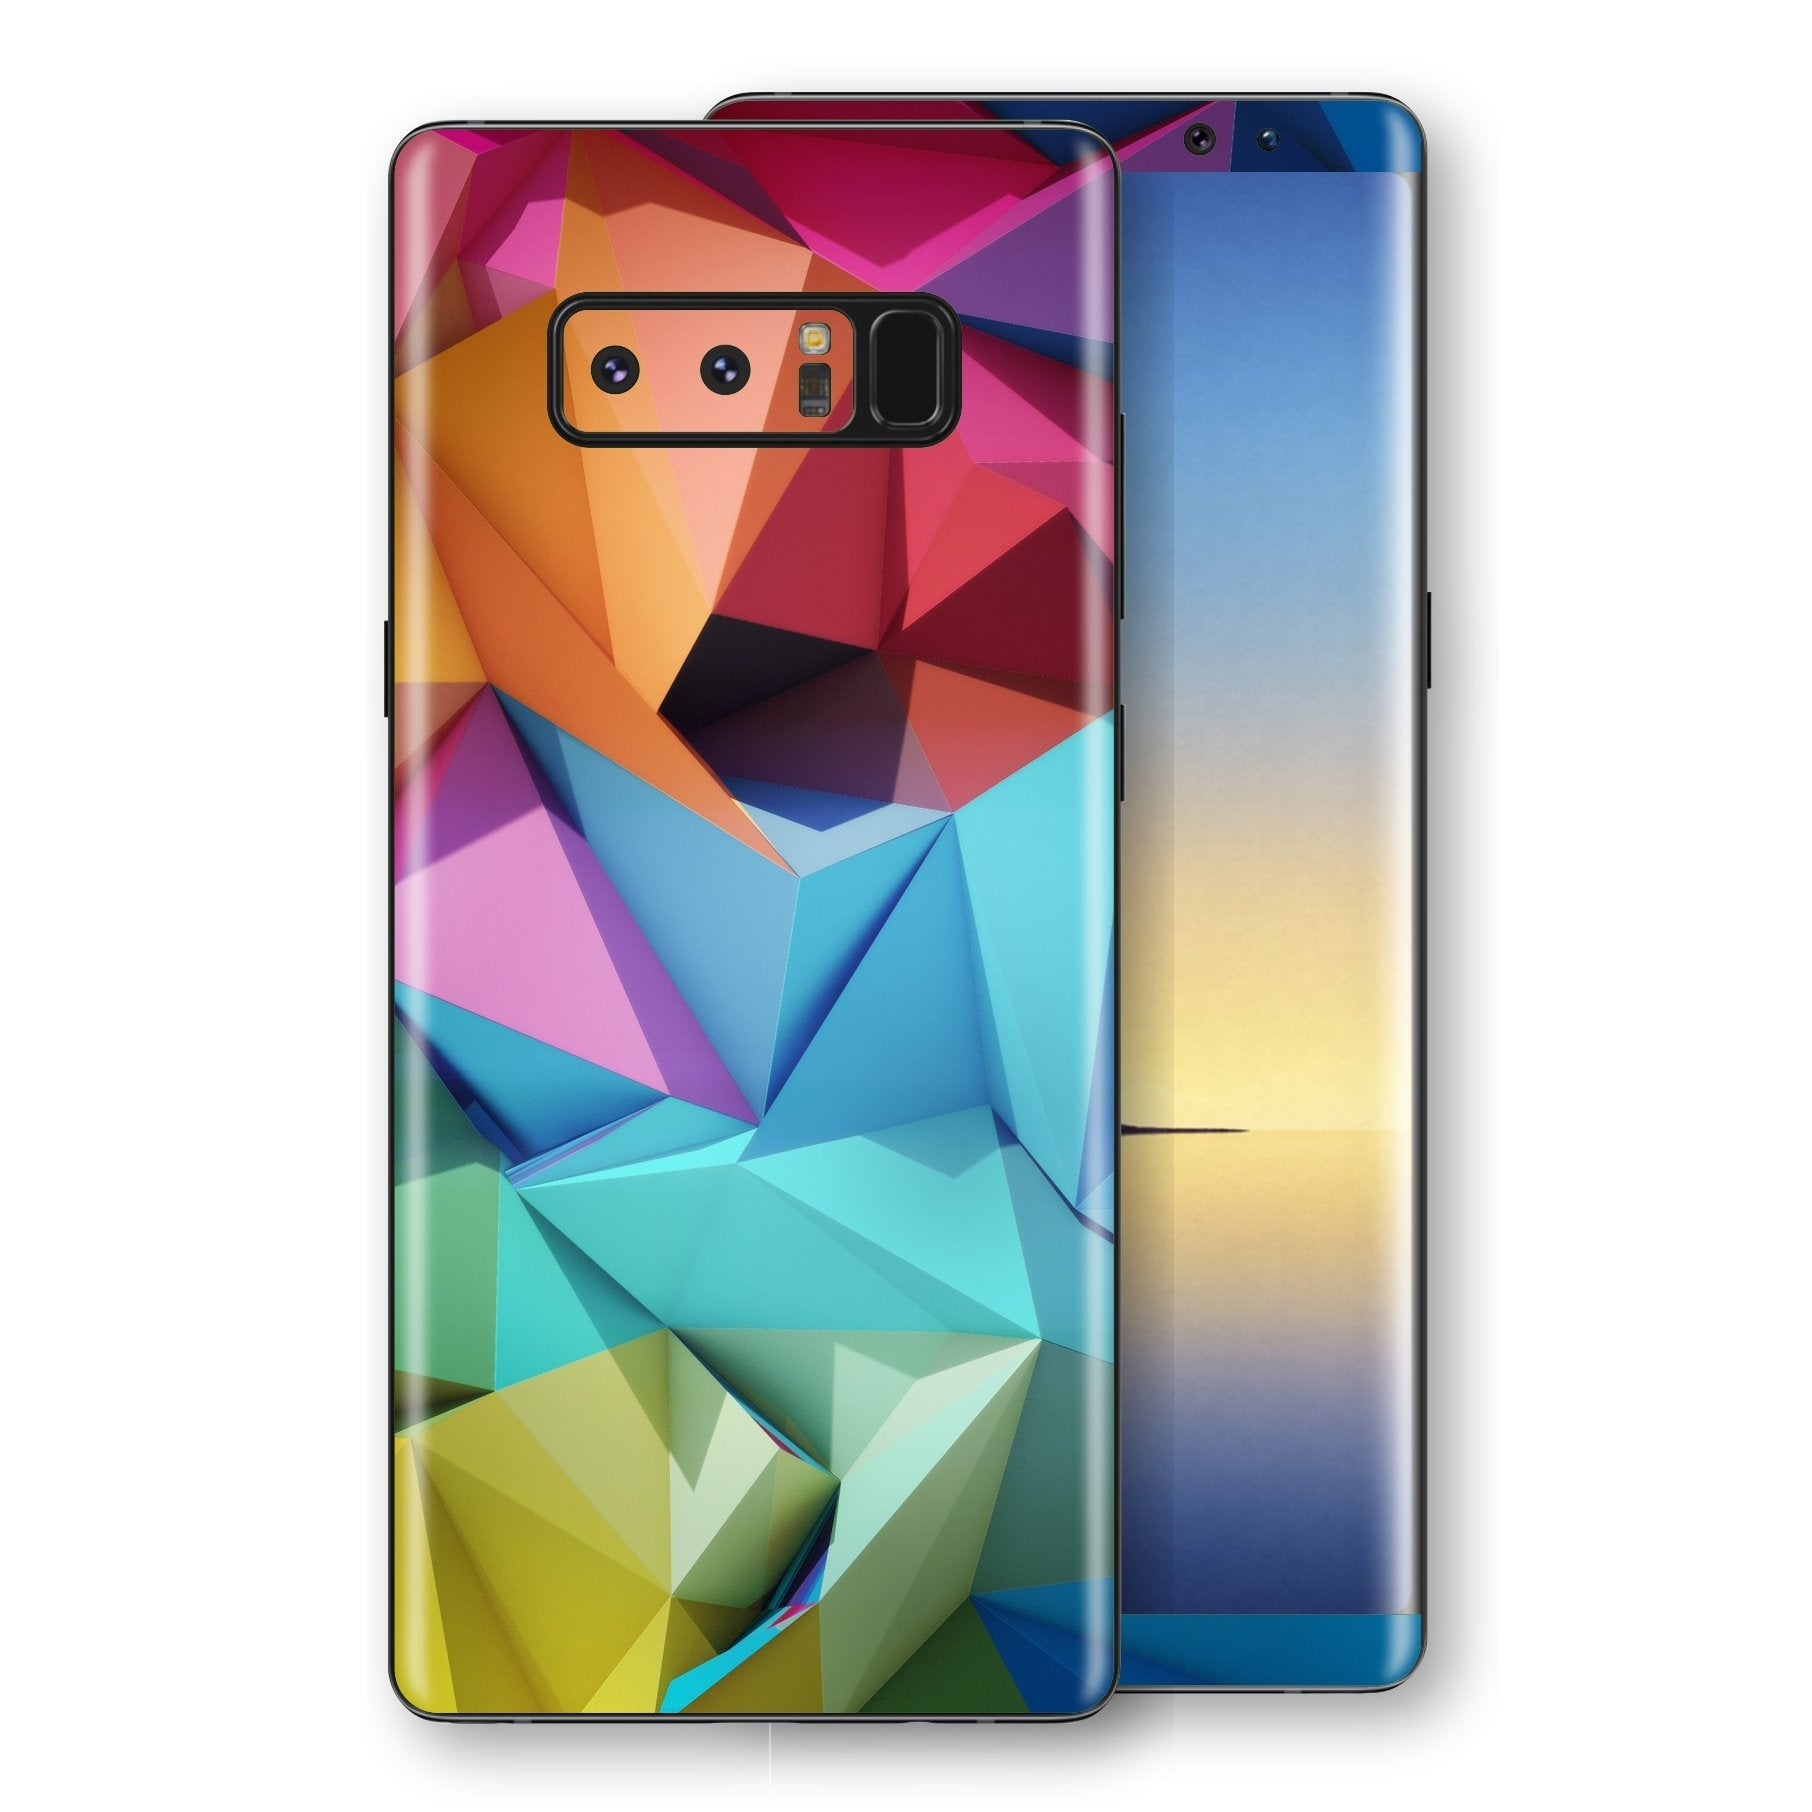 Samsung Galaxy NOTE 8 Signature Abstract Geometry Skin Wrap Decal Protector | EasySkinz